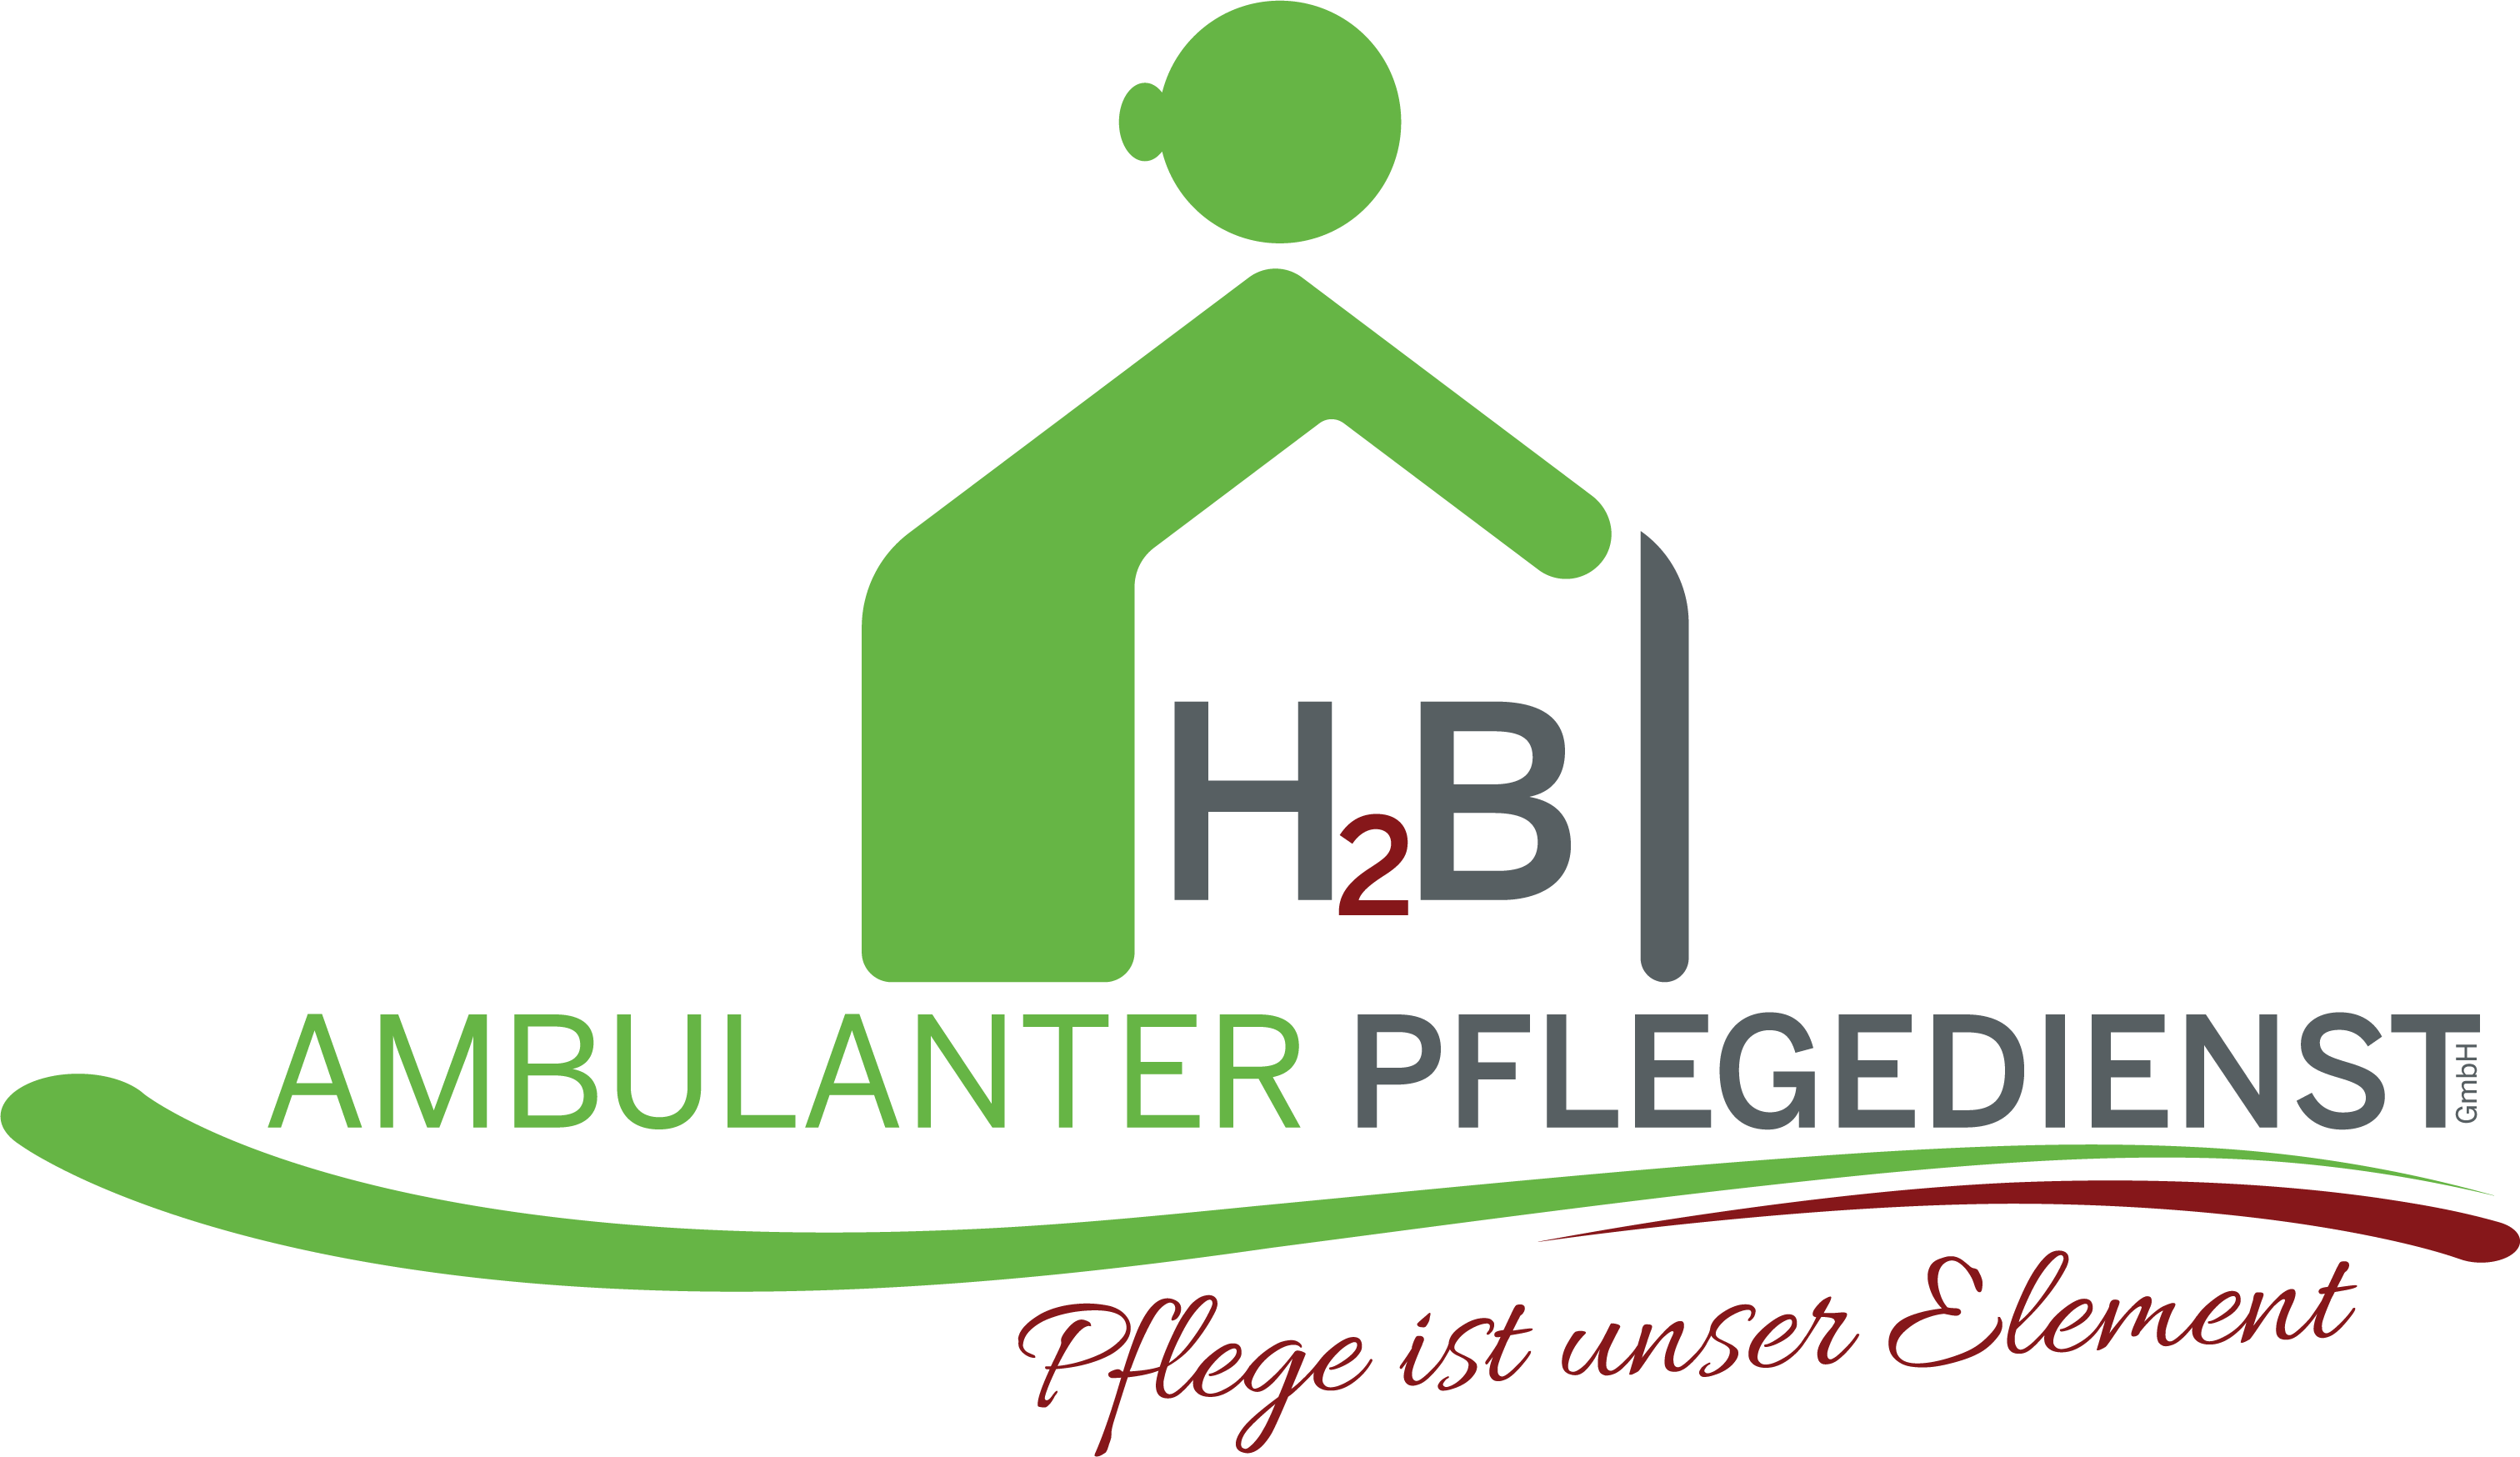 H2B Ambulanter Pflegedienst GmbH